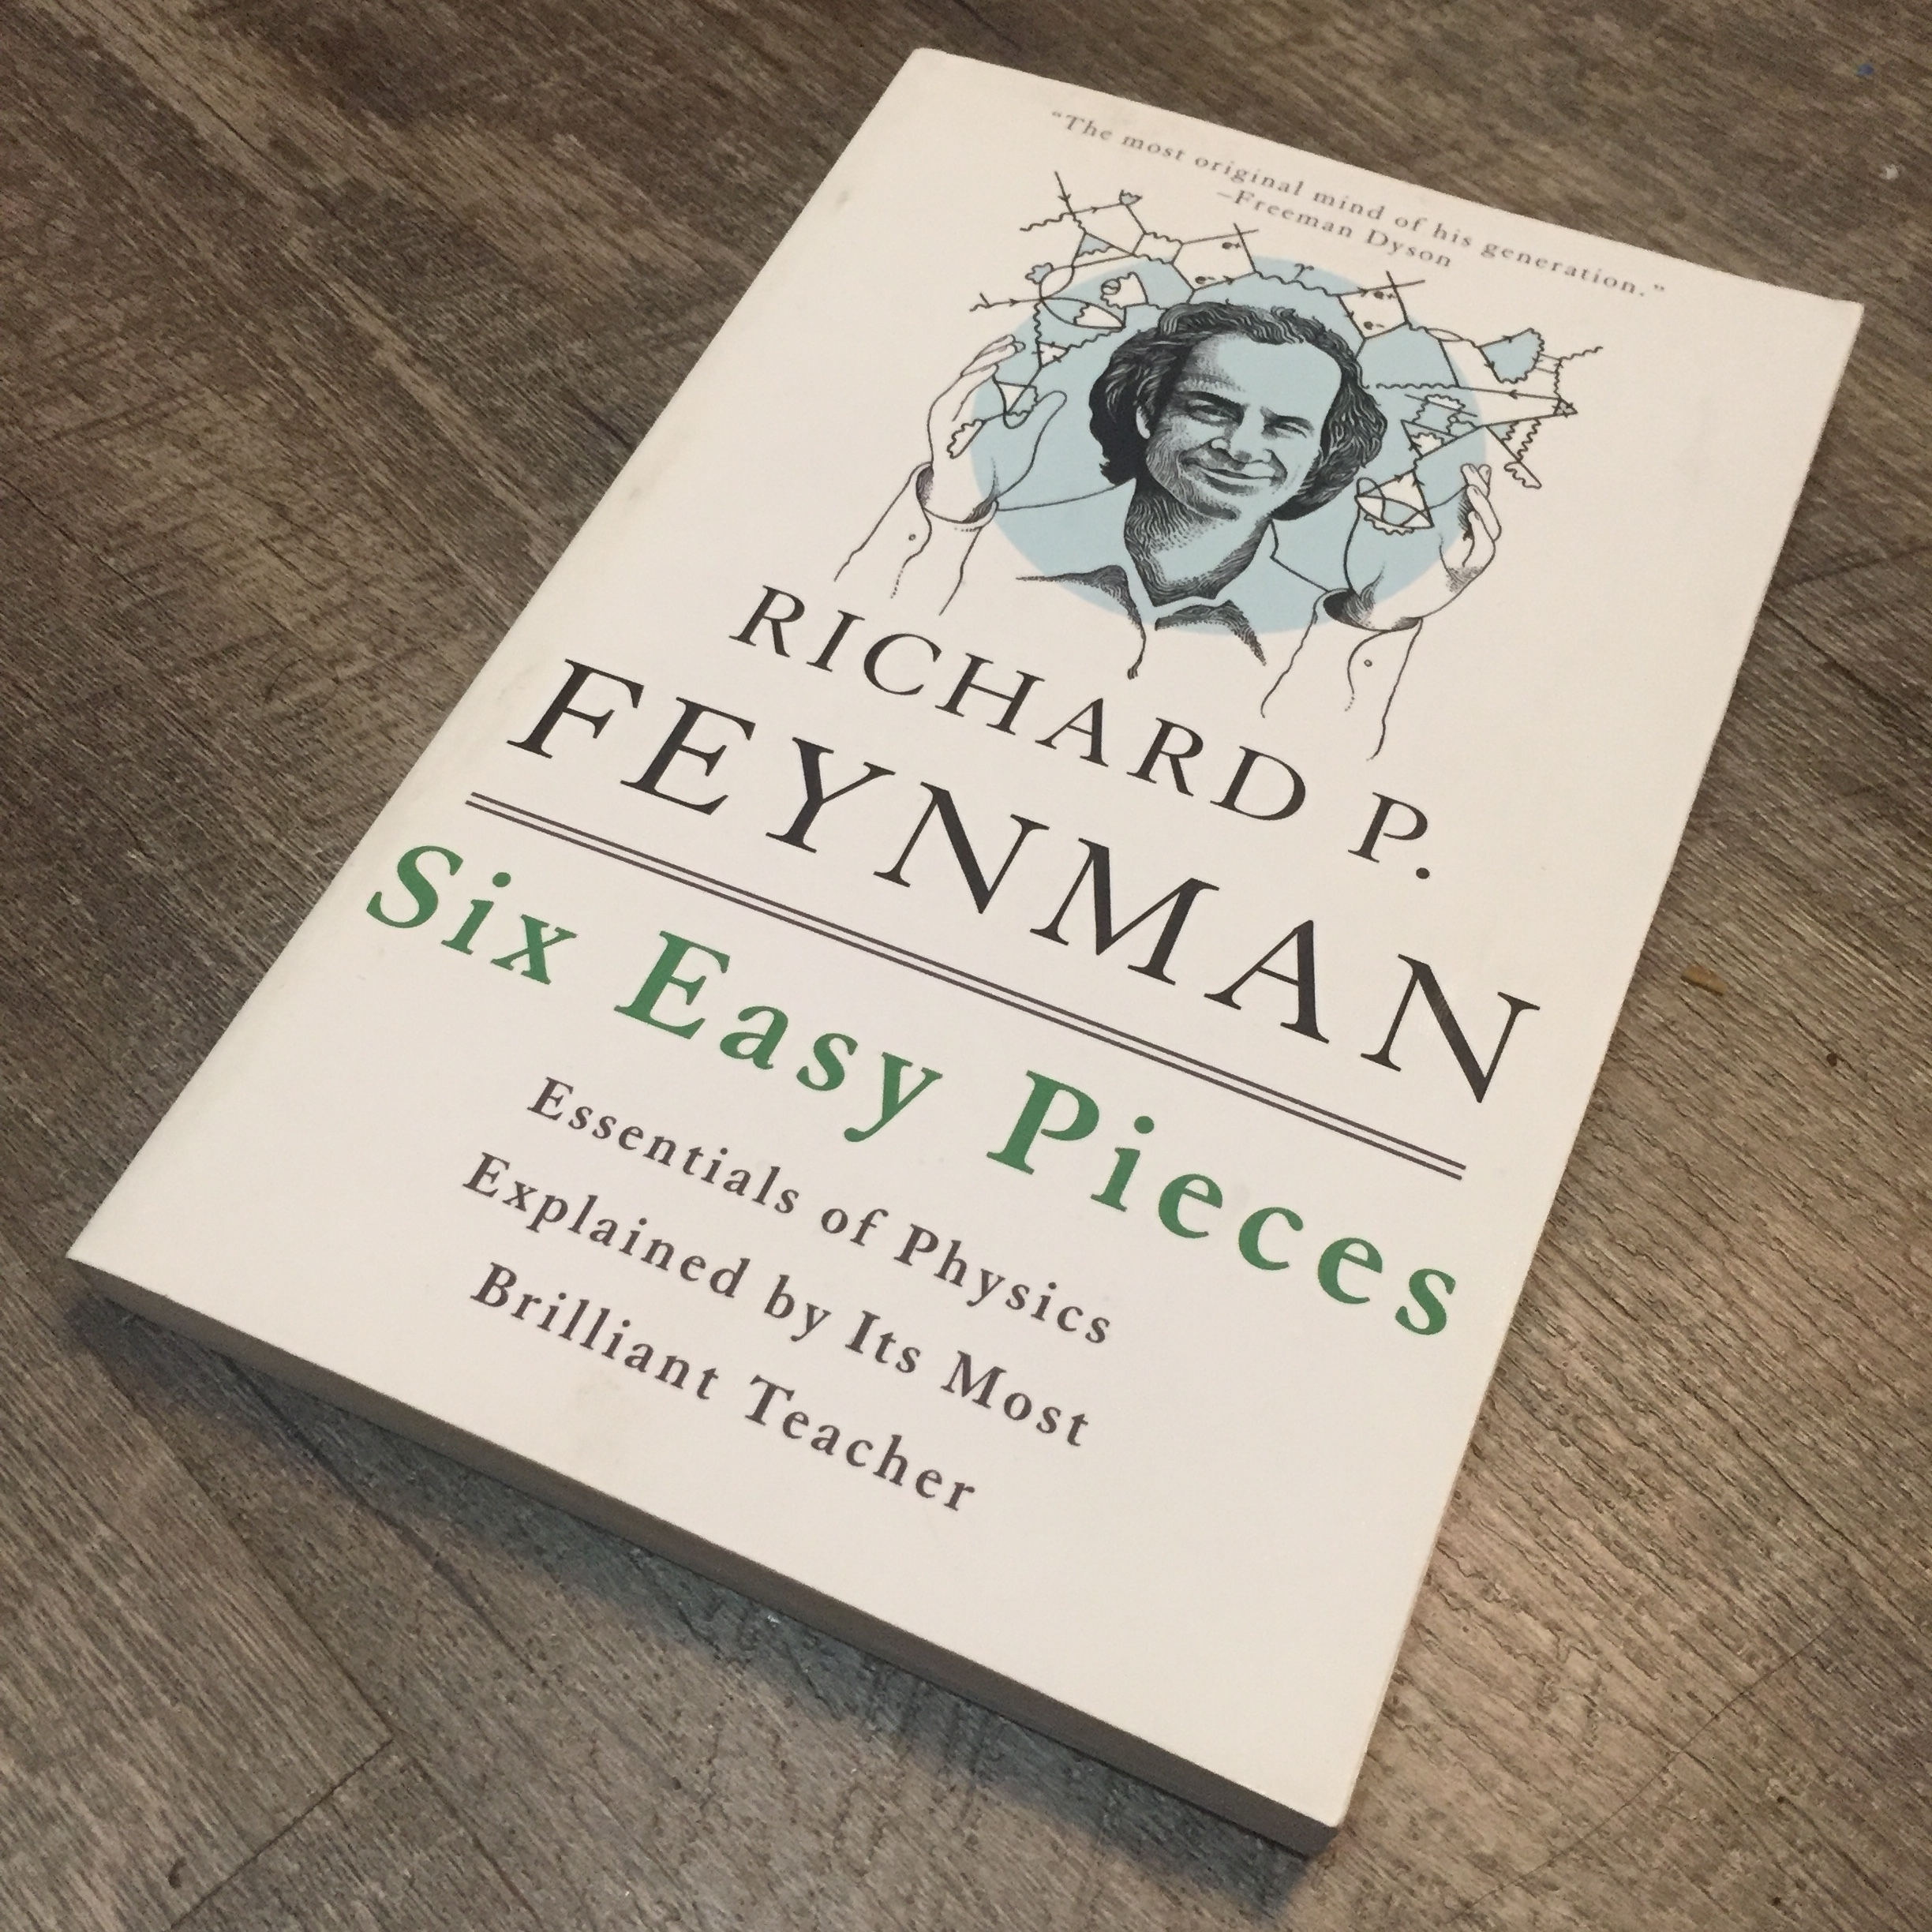 Feynman 6 easy pieces book.JPG